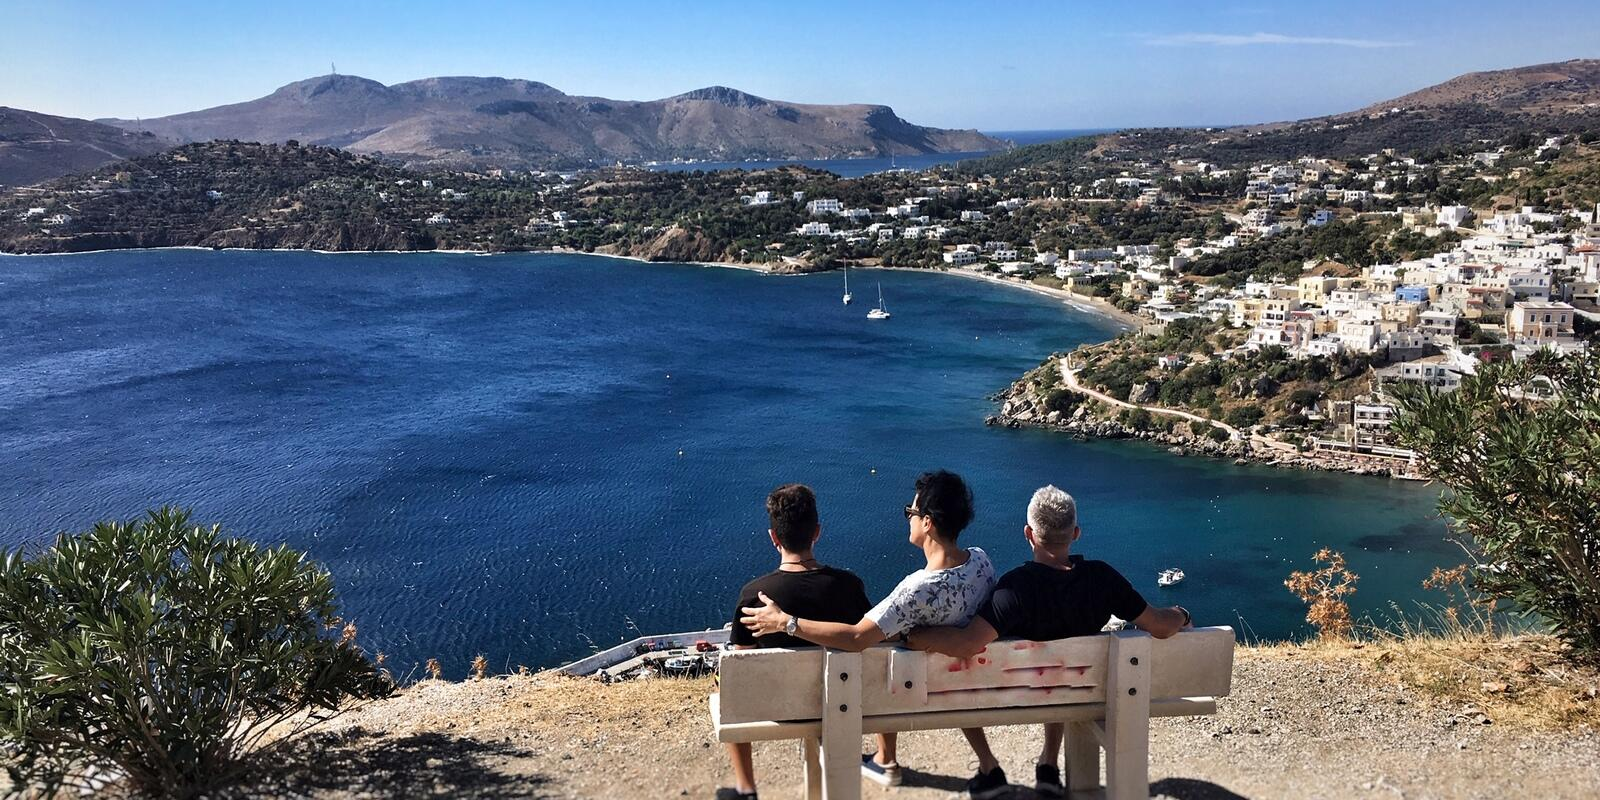 A peaceful holiday, the Dodecanese islands